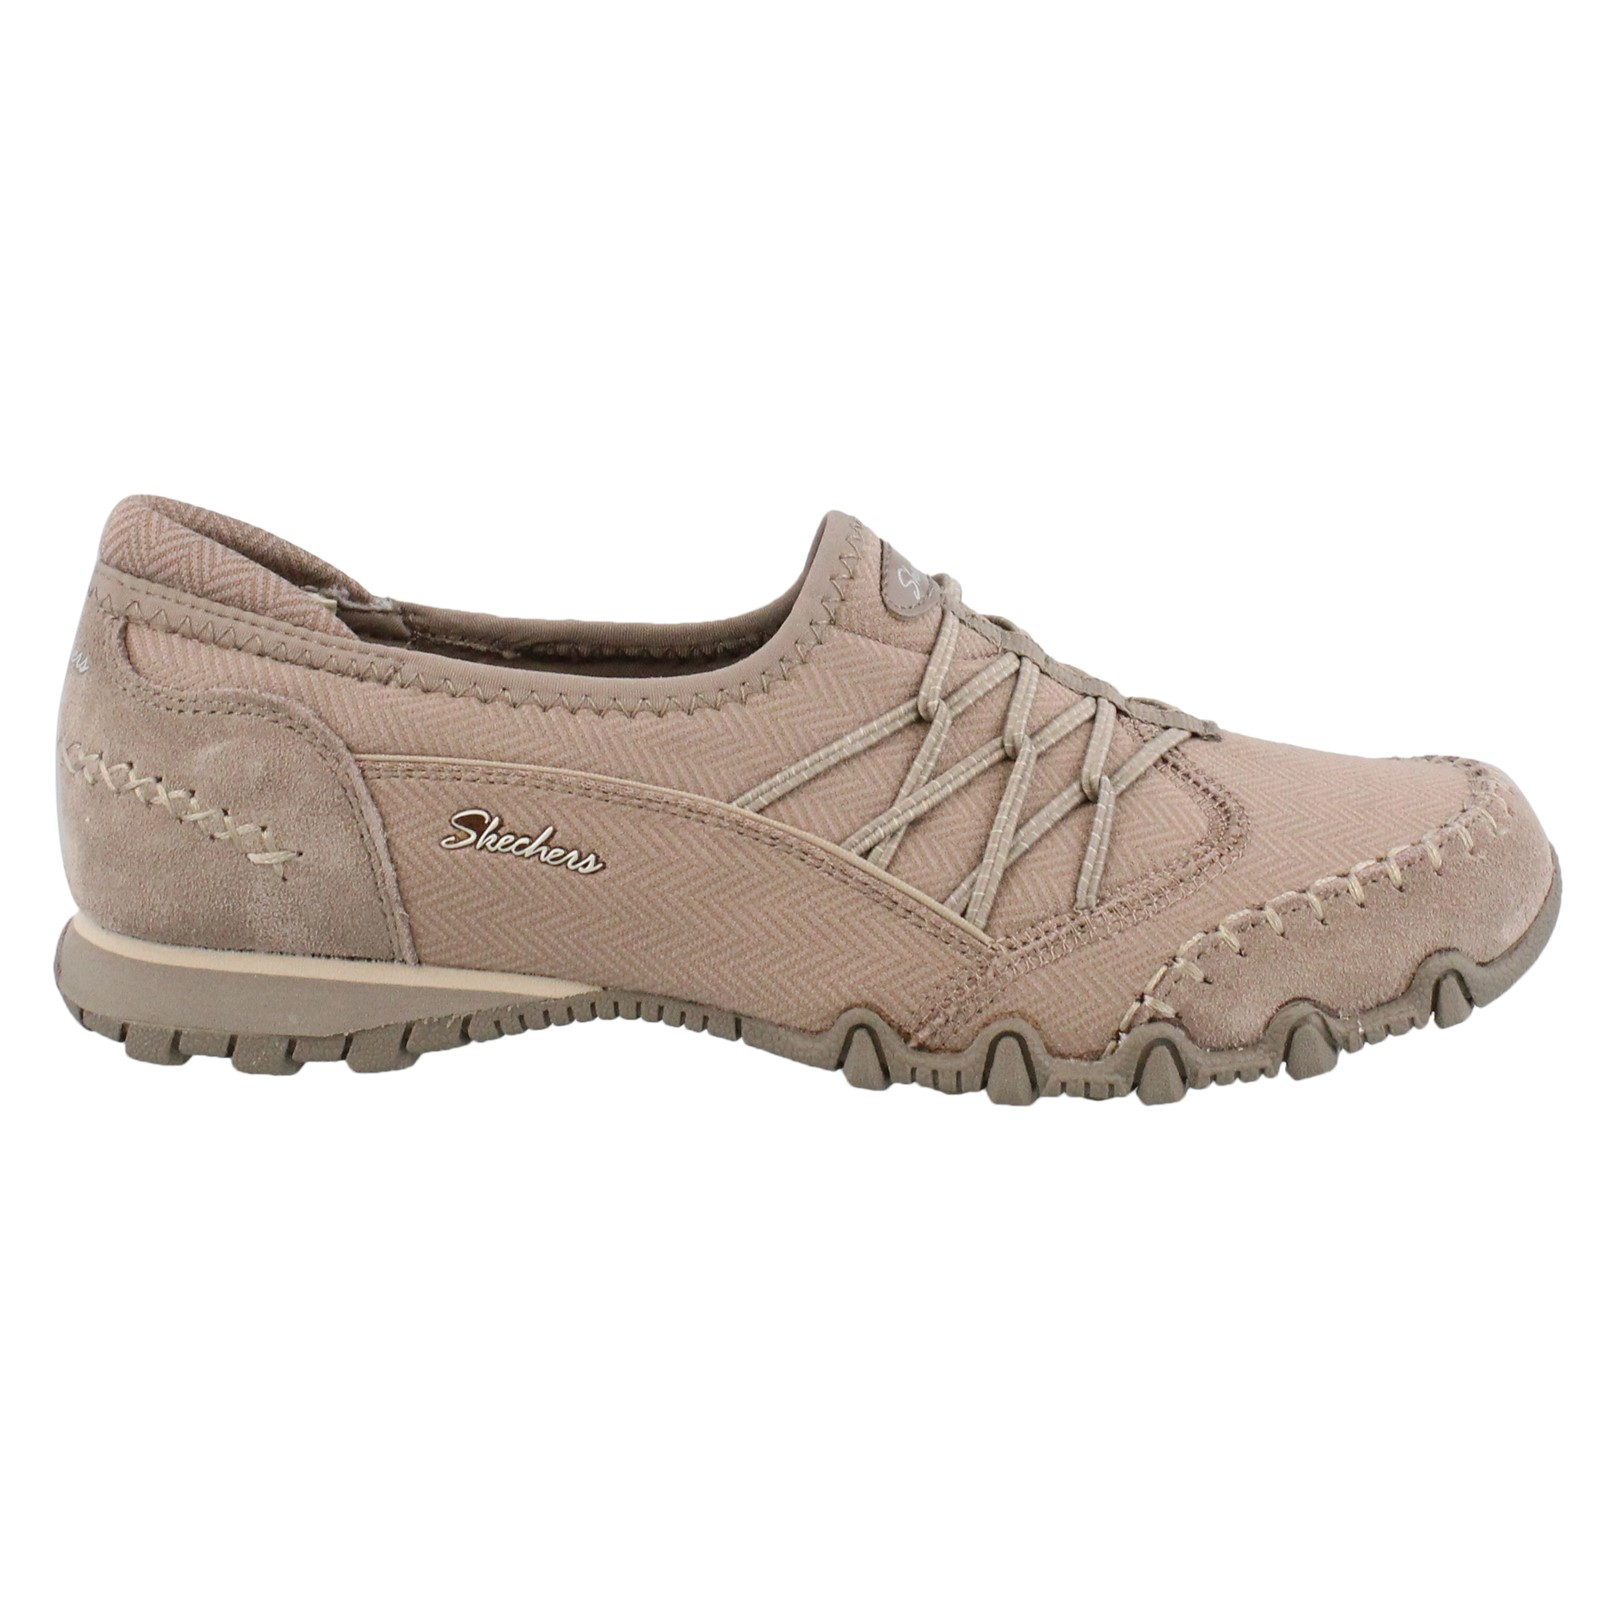 Women's Skechers, Bikers Double Digits Slip on Shoes